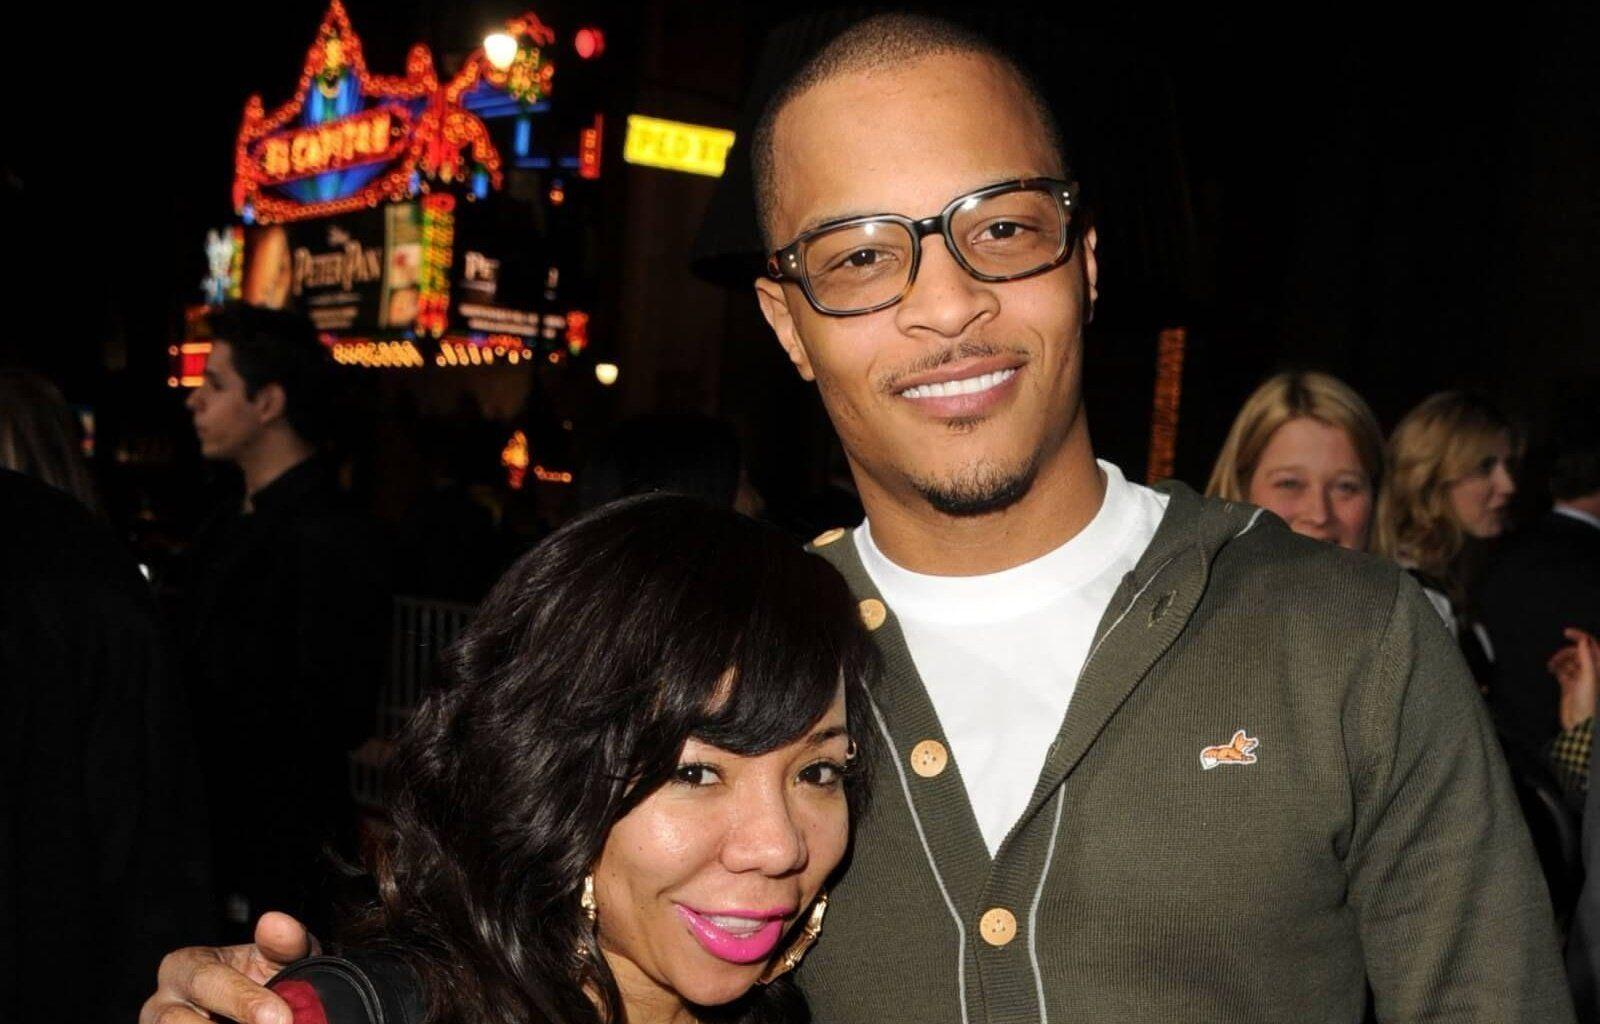 T.I. And Tiny Harris Assumed A Solemn Air At The Historical Nipsey Hussle's Memorial Service And Fans Respect Their Empathy - See The Photo That Tip Shared